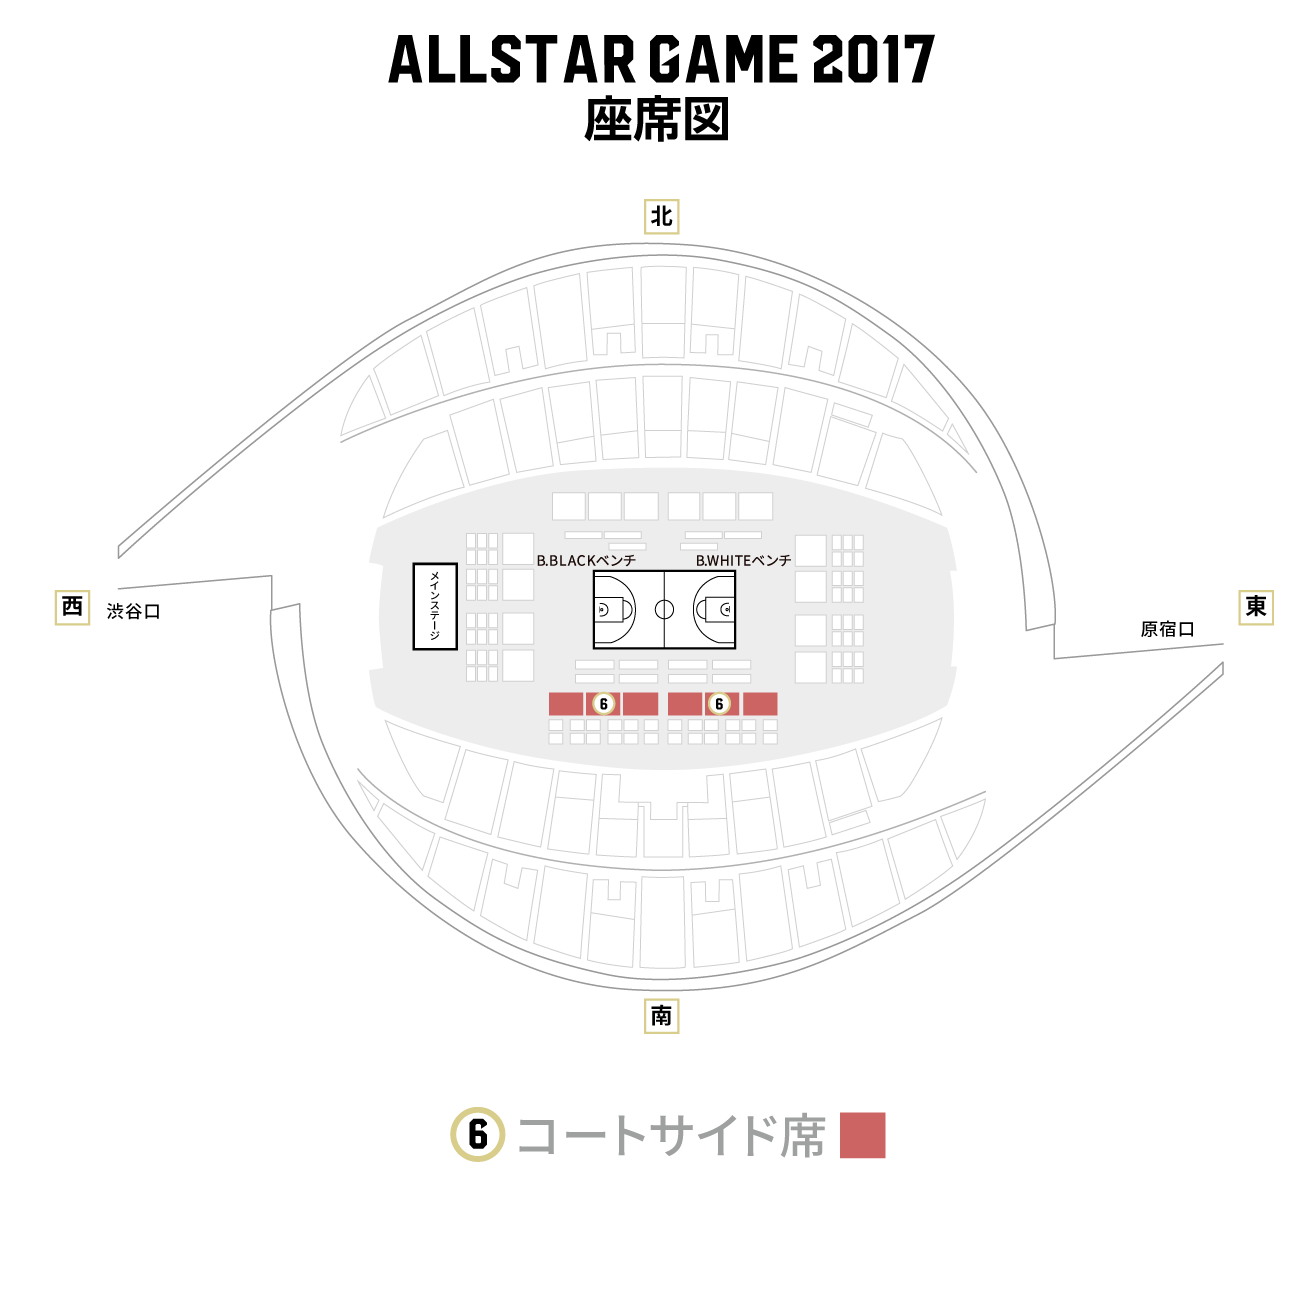 seatview_seat_06.png